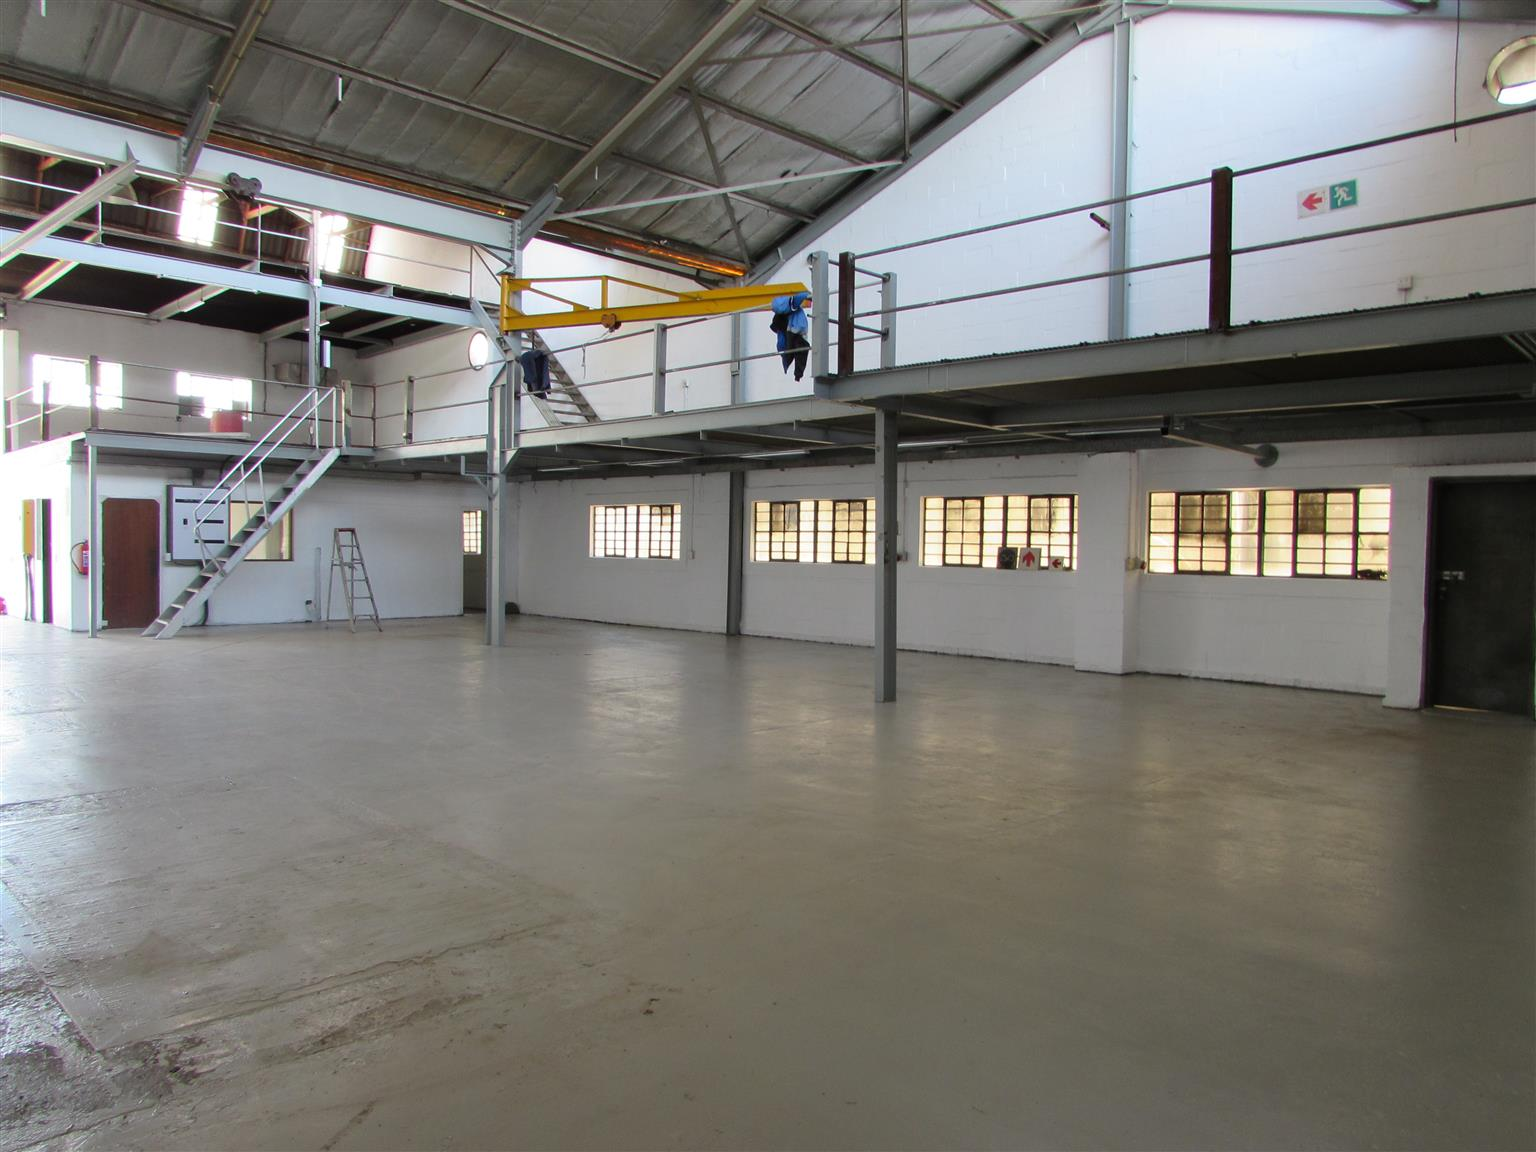 MONTAGUE GARDENS: 576 Warehouse To Let